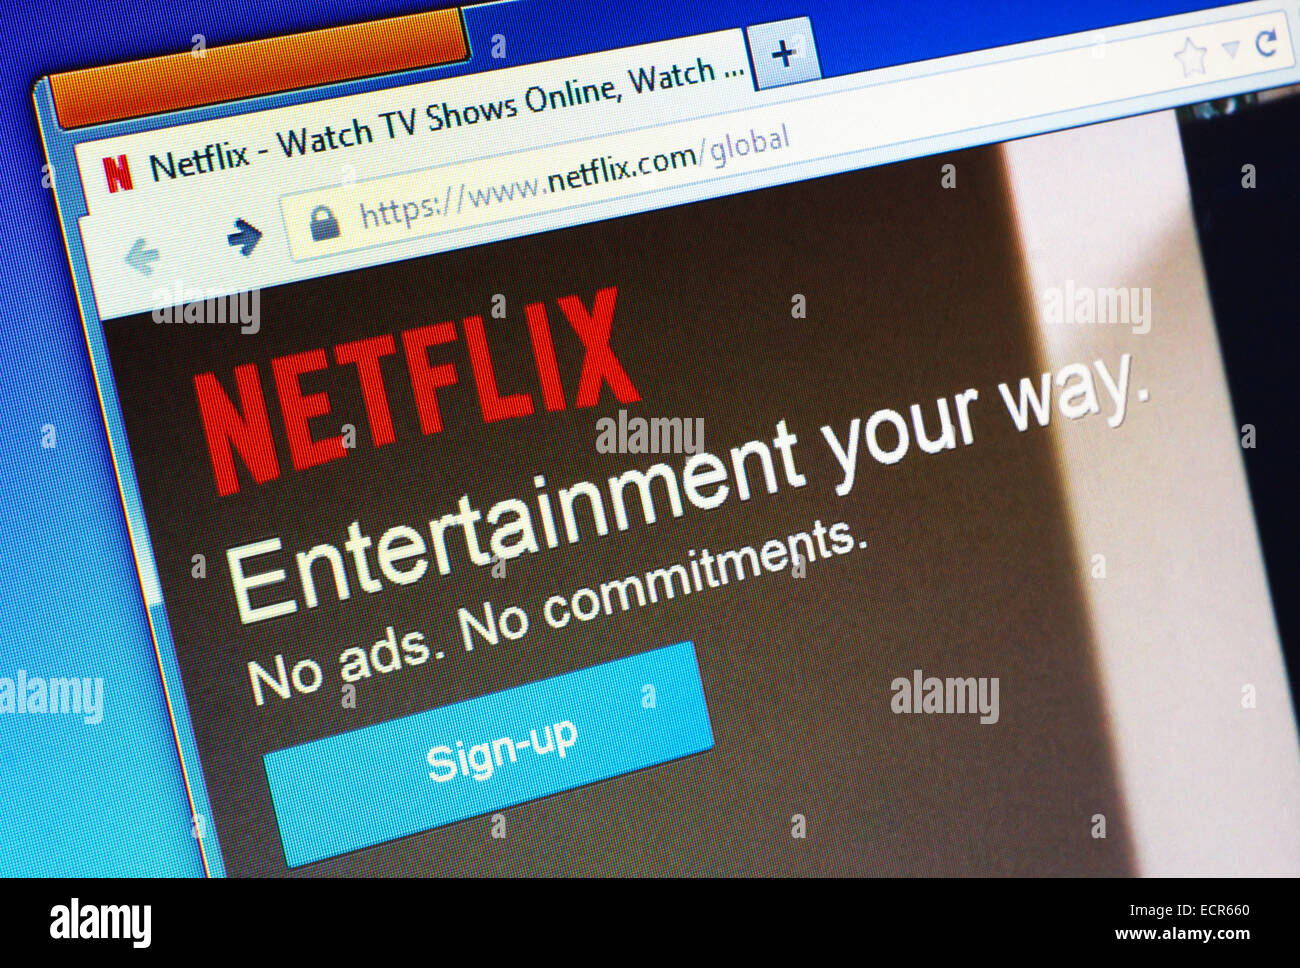 Netflix.com homepage on the computer screen. Netflix is a provider on-demand streaming media. Editorial use only - Stock Image